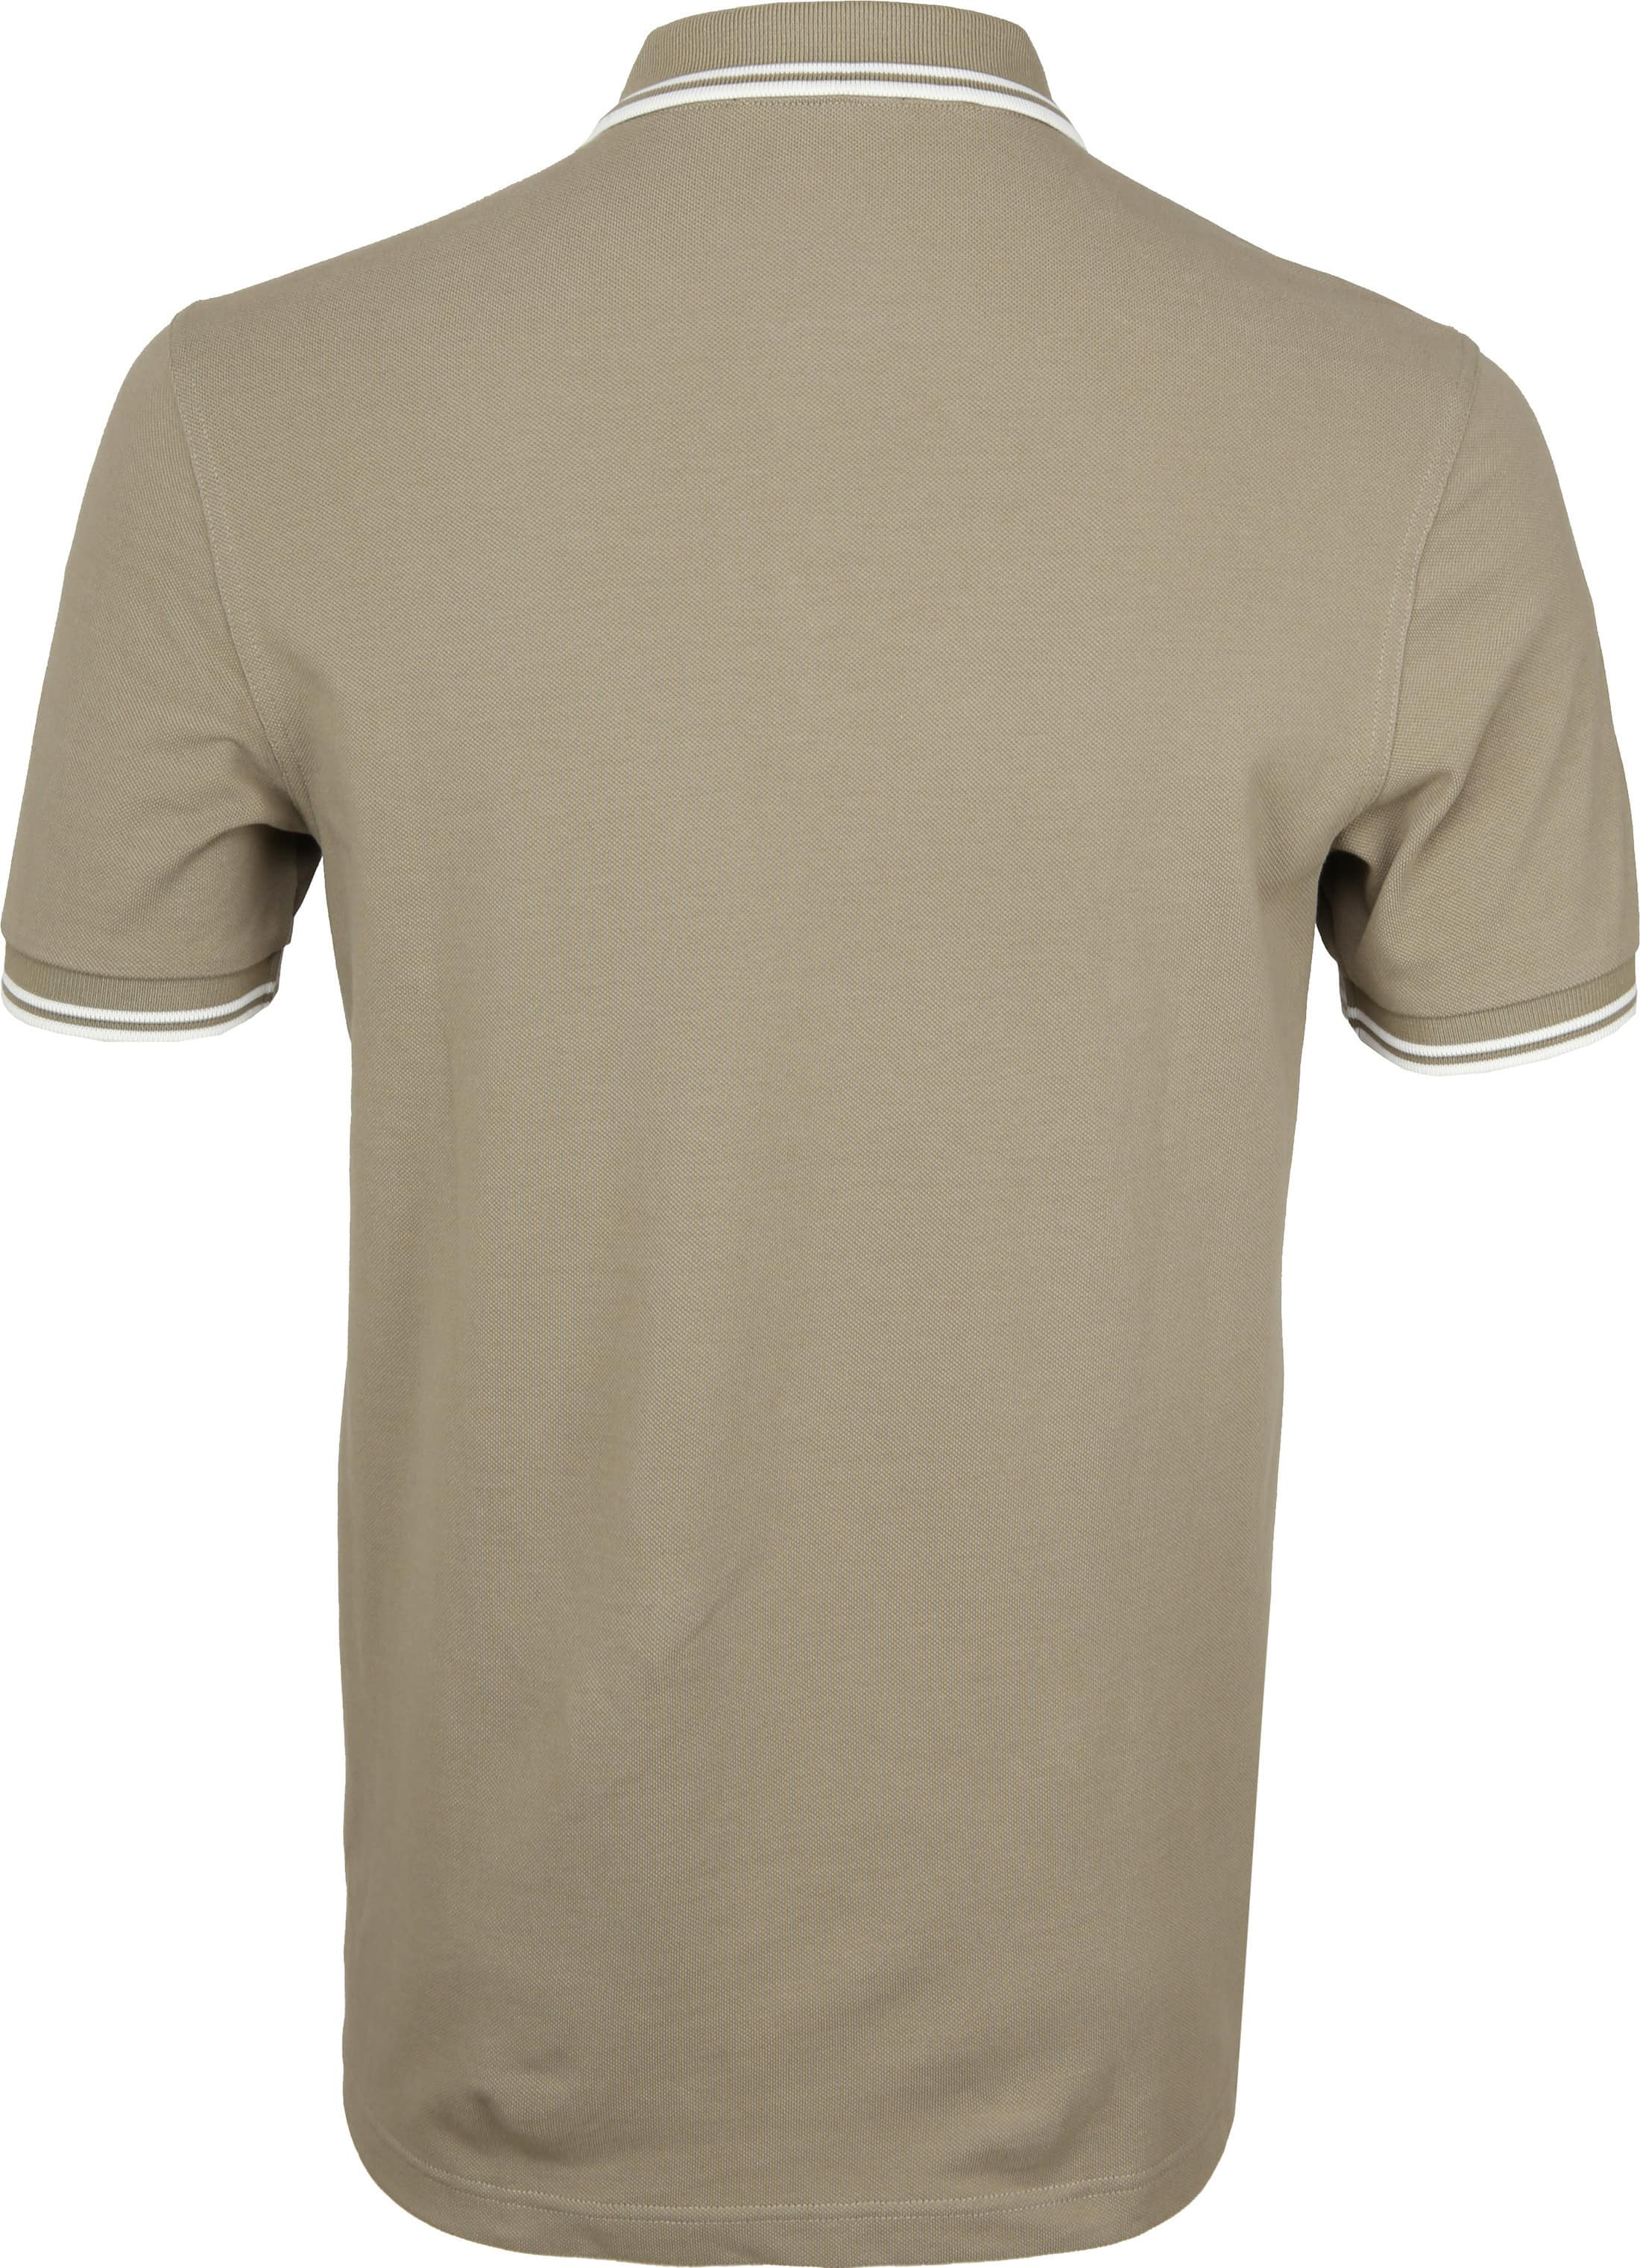 Fred Perry Poloshirt Beige H04 foto 2